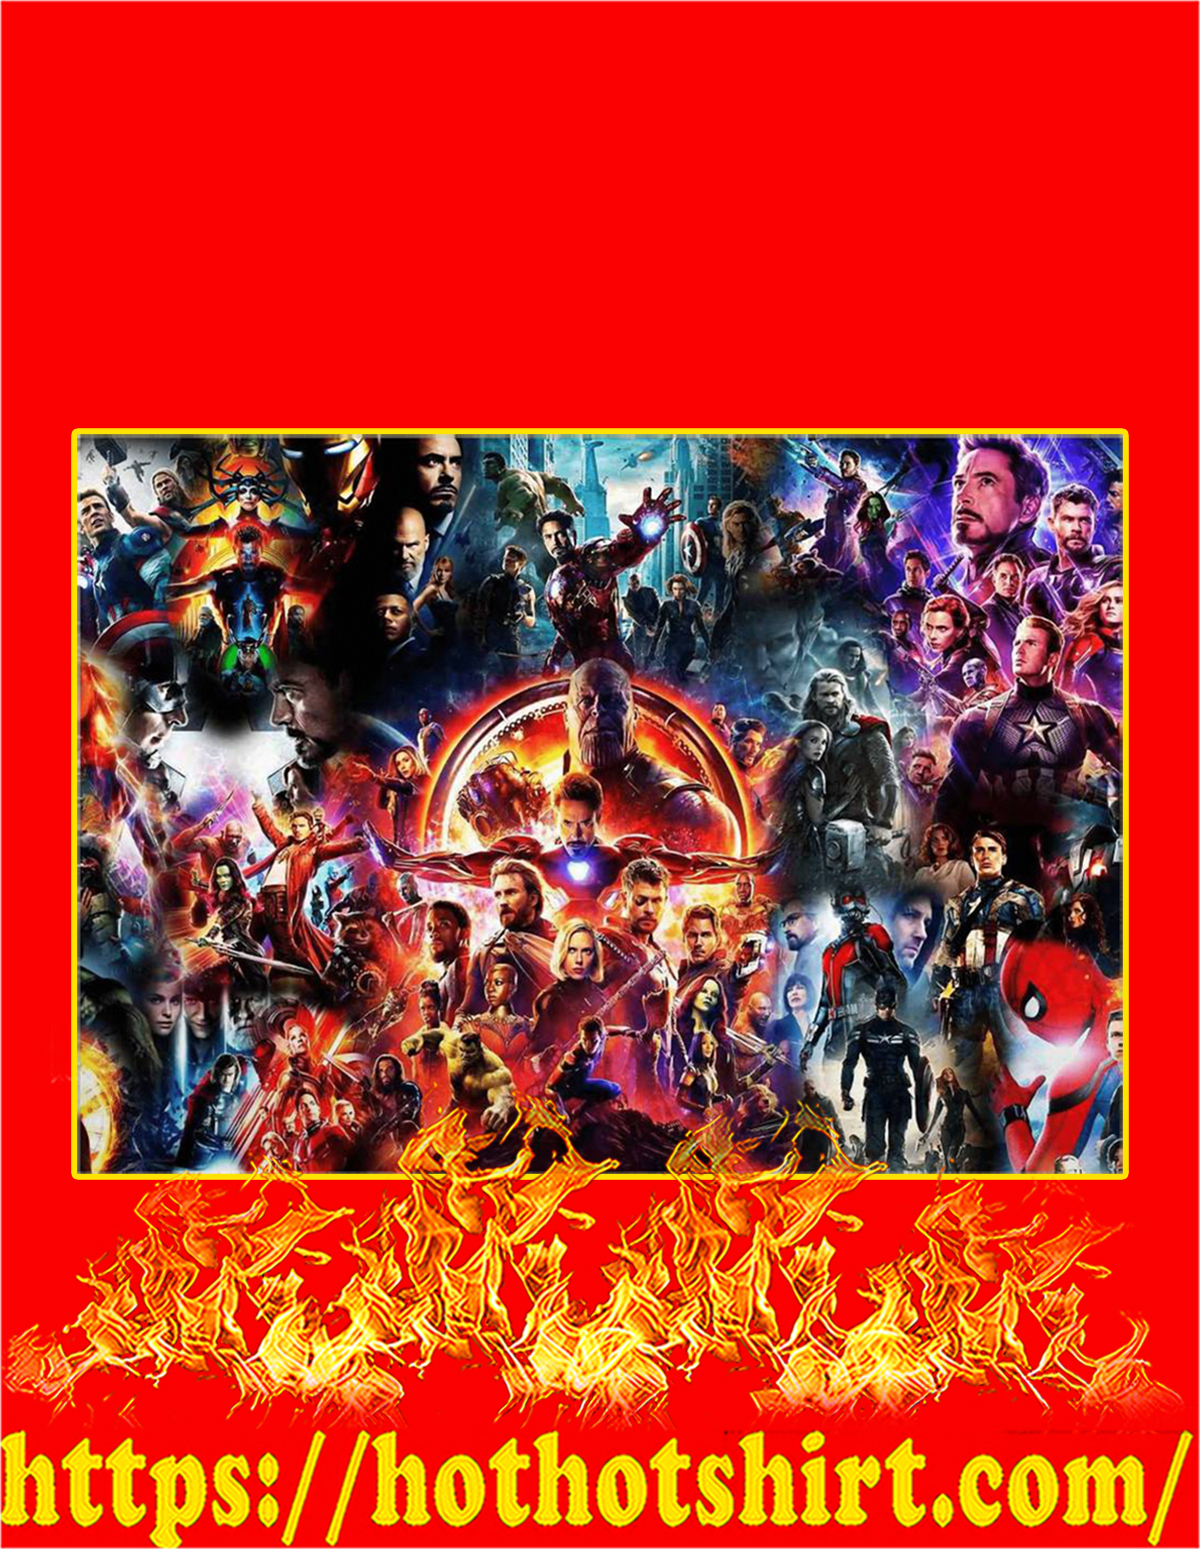 The Avengers End Game Poster - A2